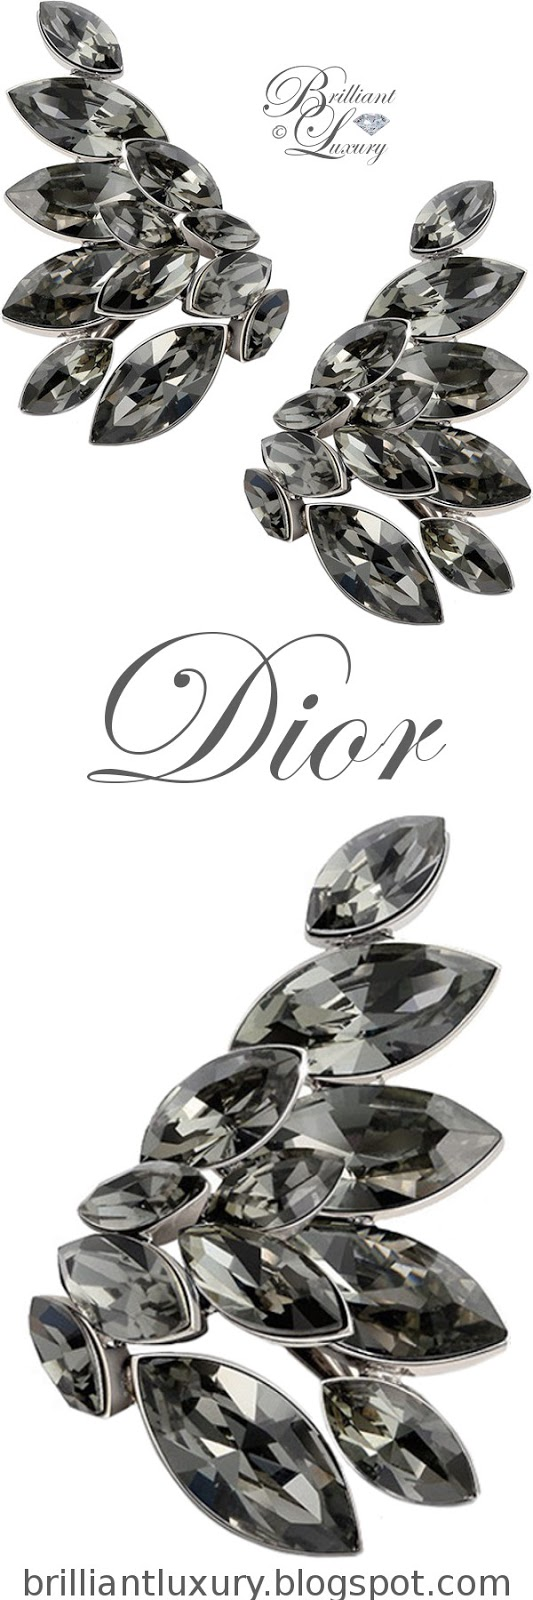 Brilliant Luxury ♦ Dior 'Everdior' earrings